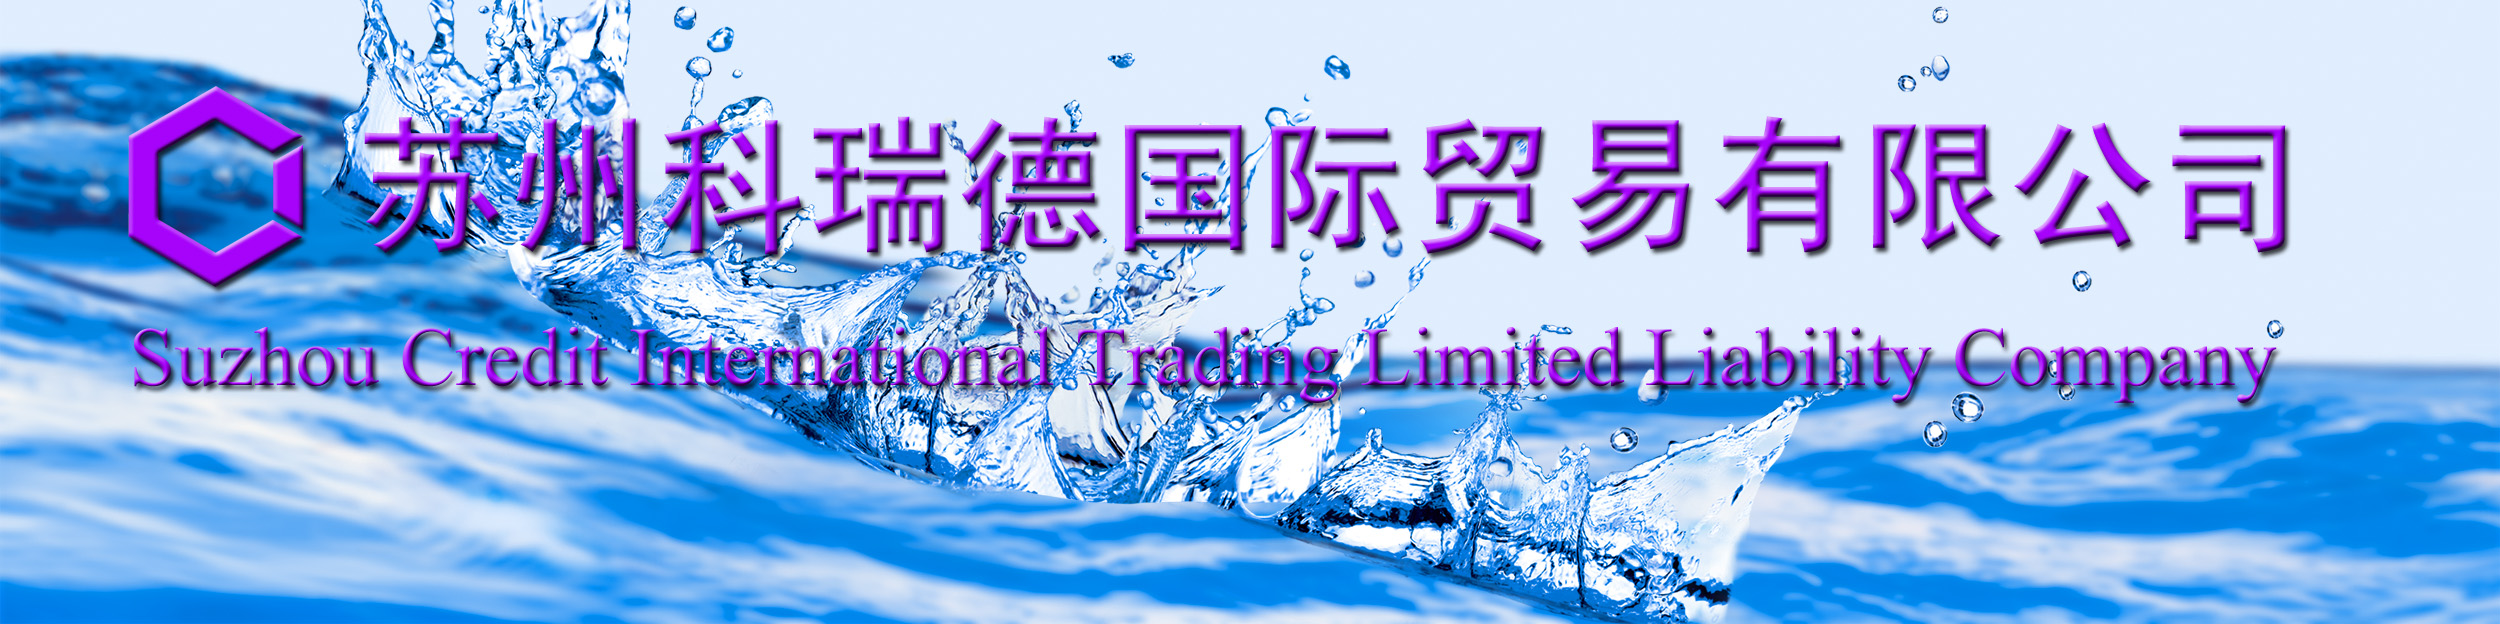 suzhou credit international trading